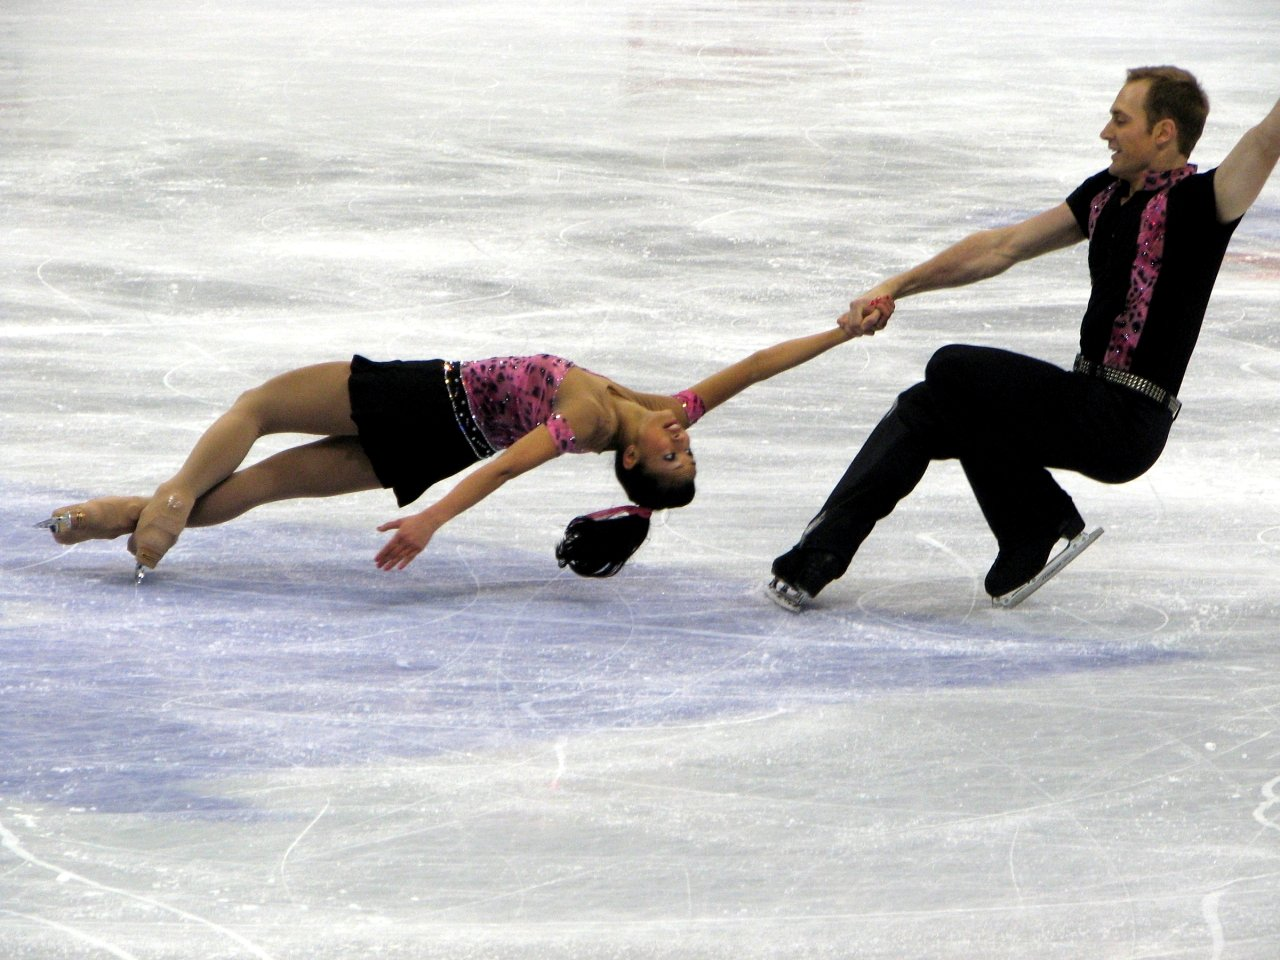 photogallery of miracles of light figure skating